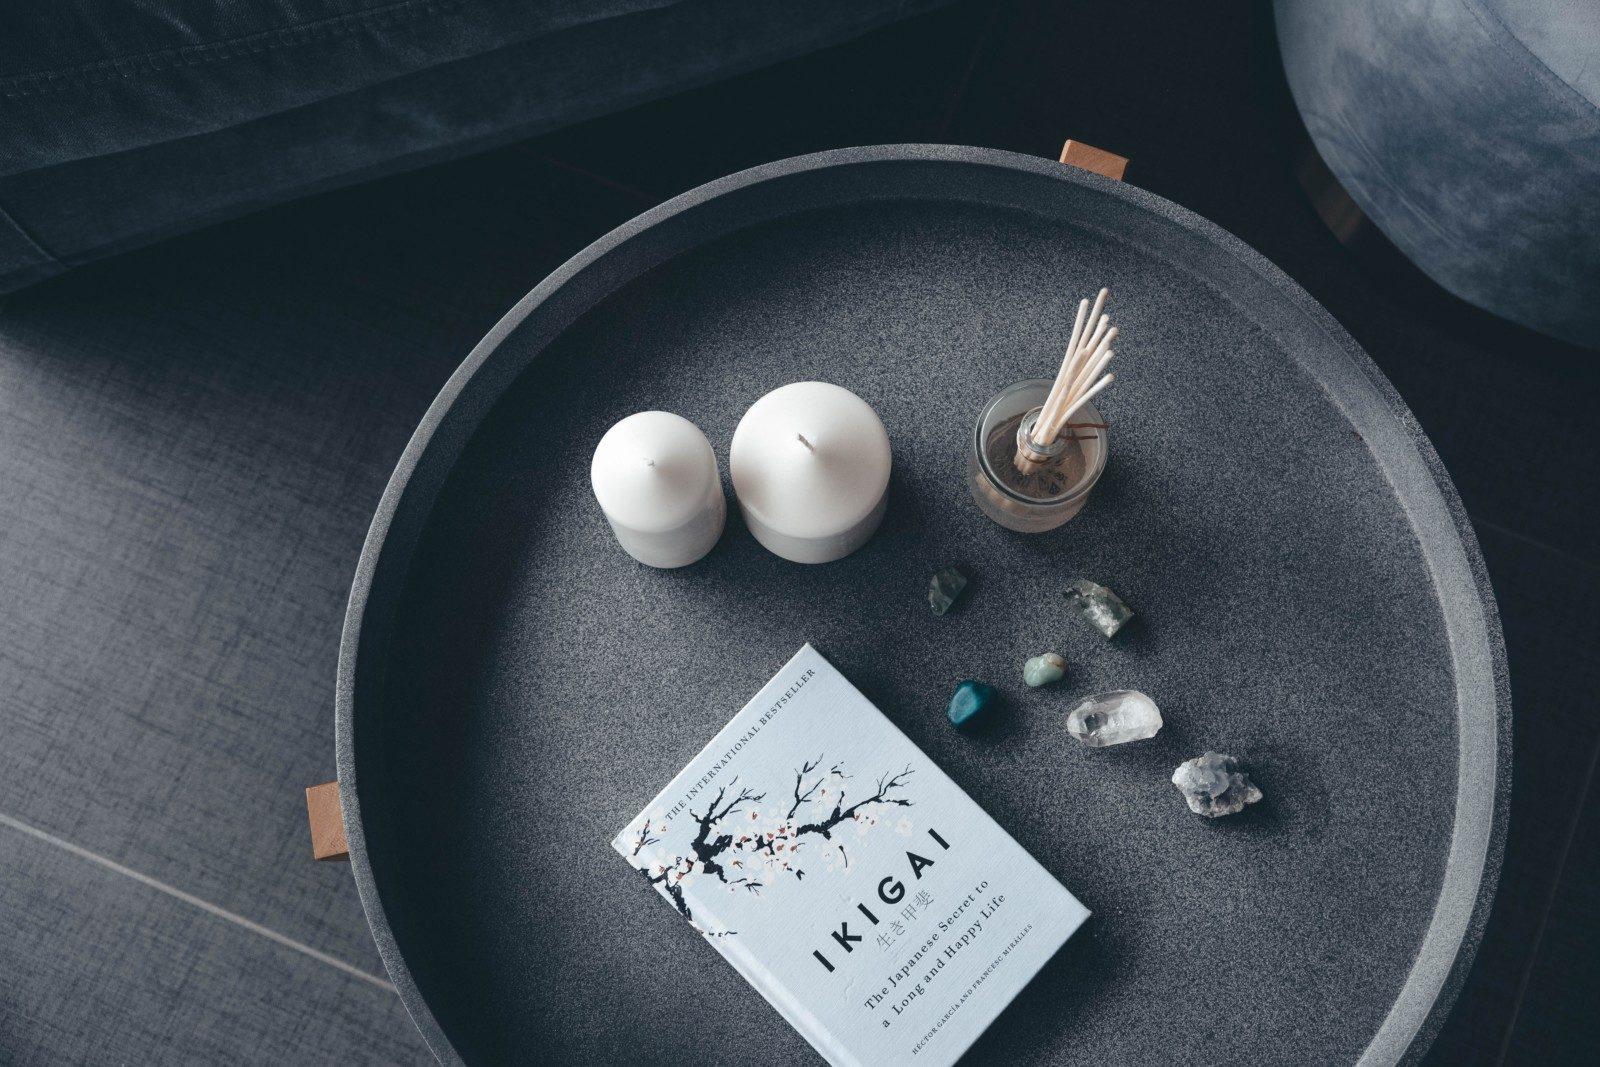 Ikigai book with candles, crystals and reed diffuser